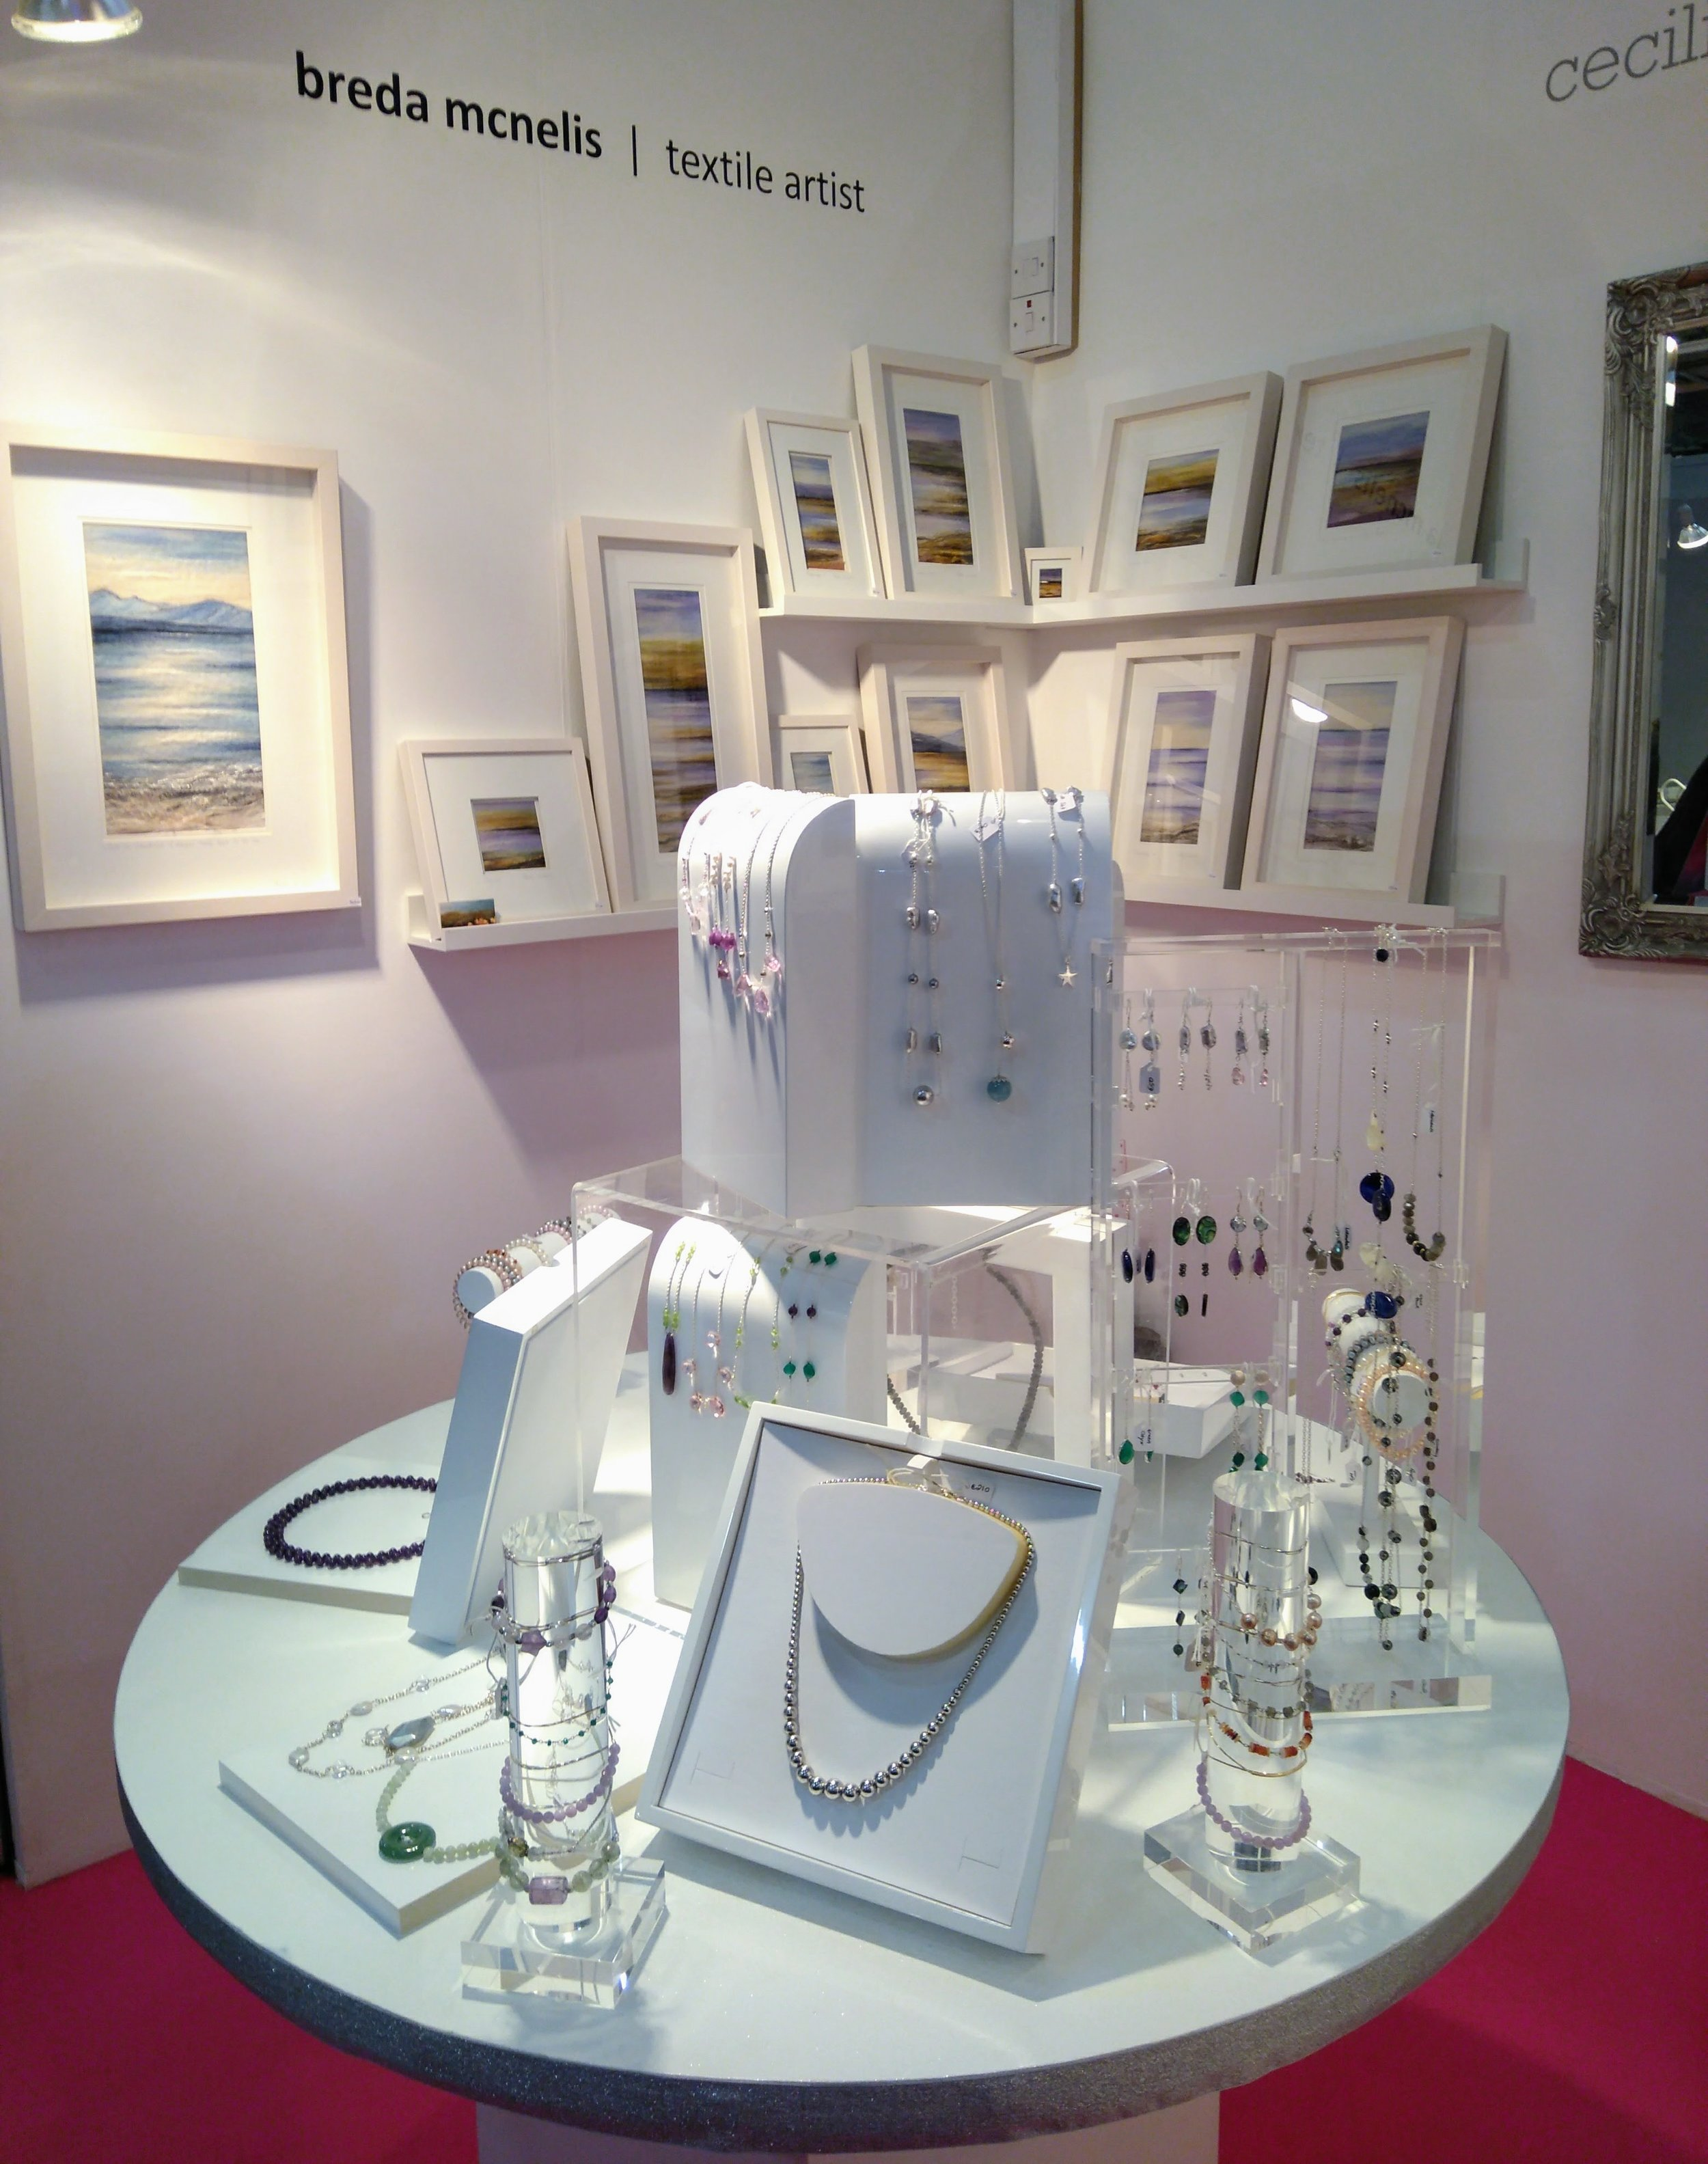 A selection of Cecilia's beautiful jewellery…